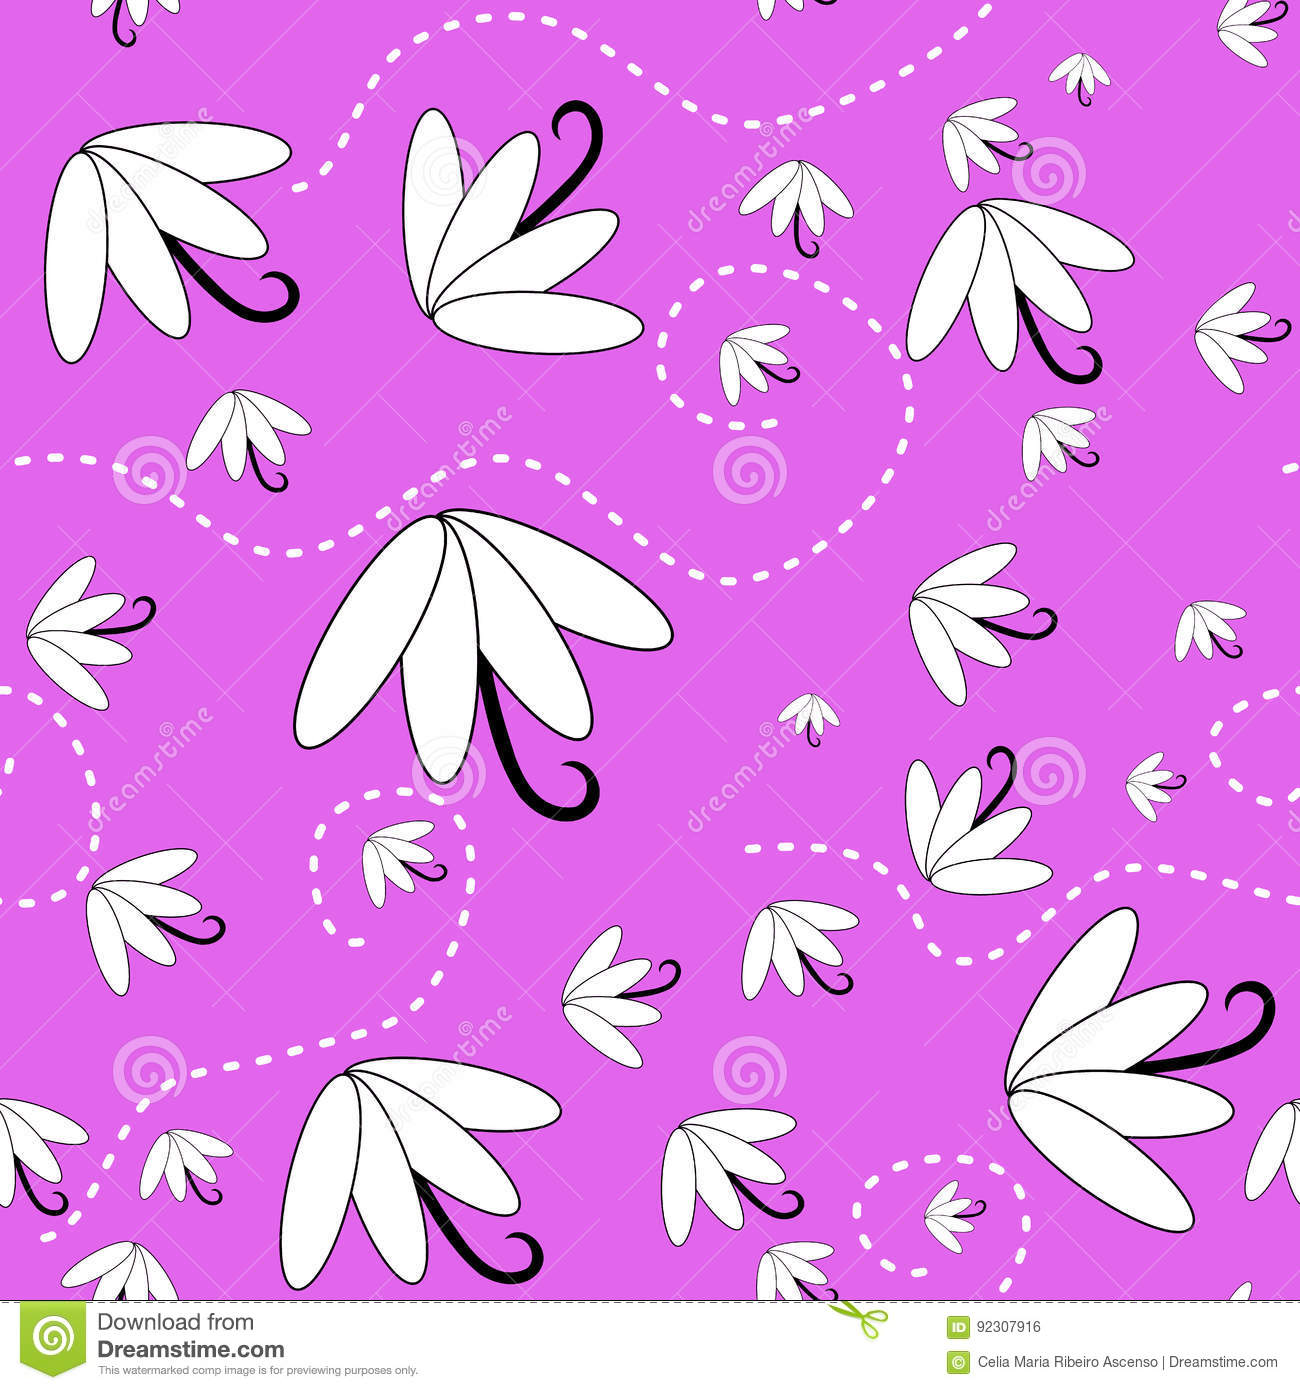 Flowers on the wind seamless background